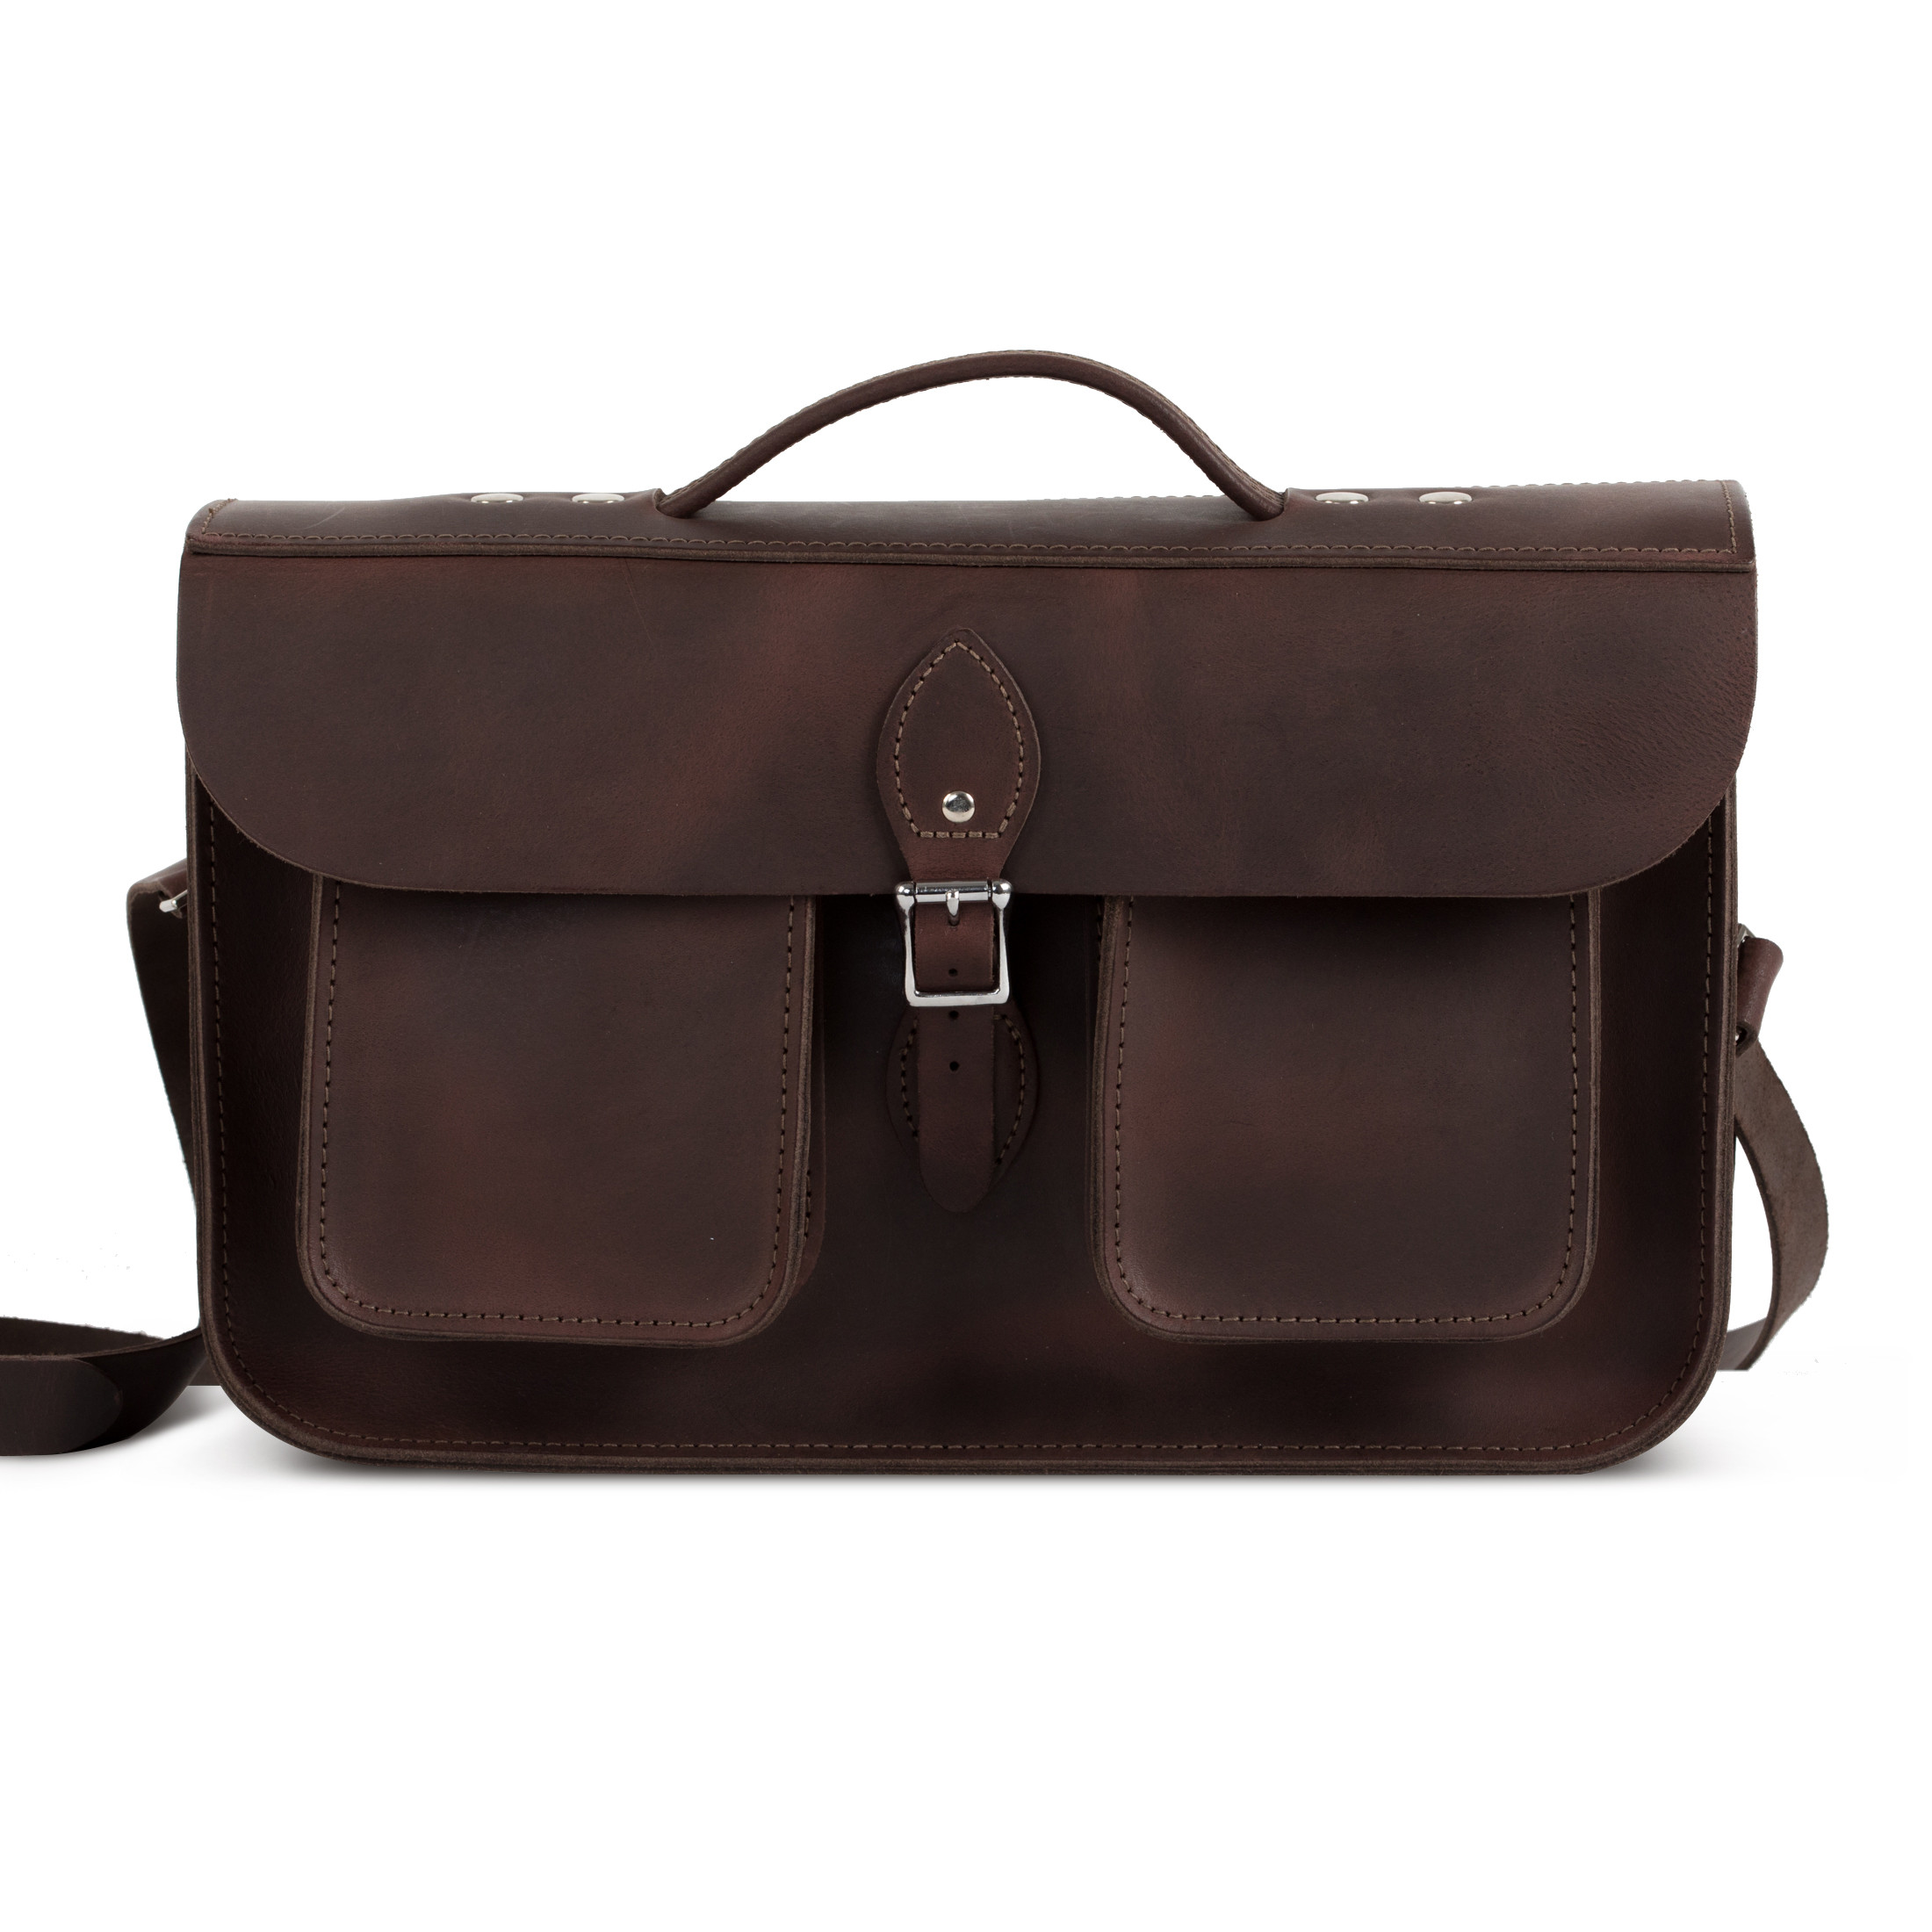 Jude Premium Leather Briefcase in Vintage Brown